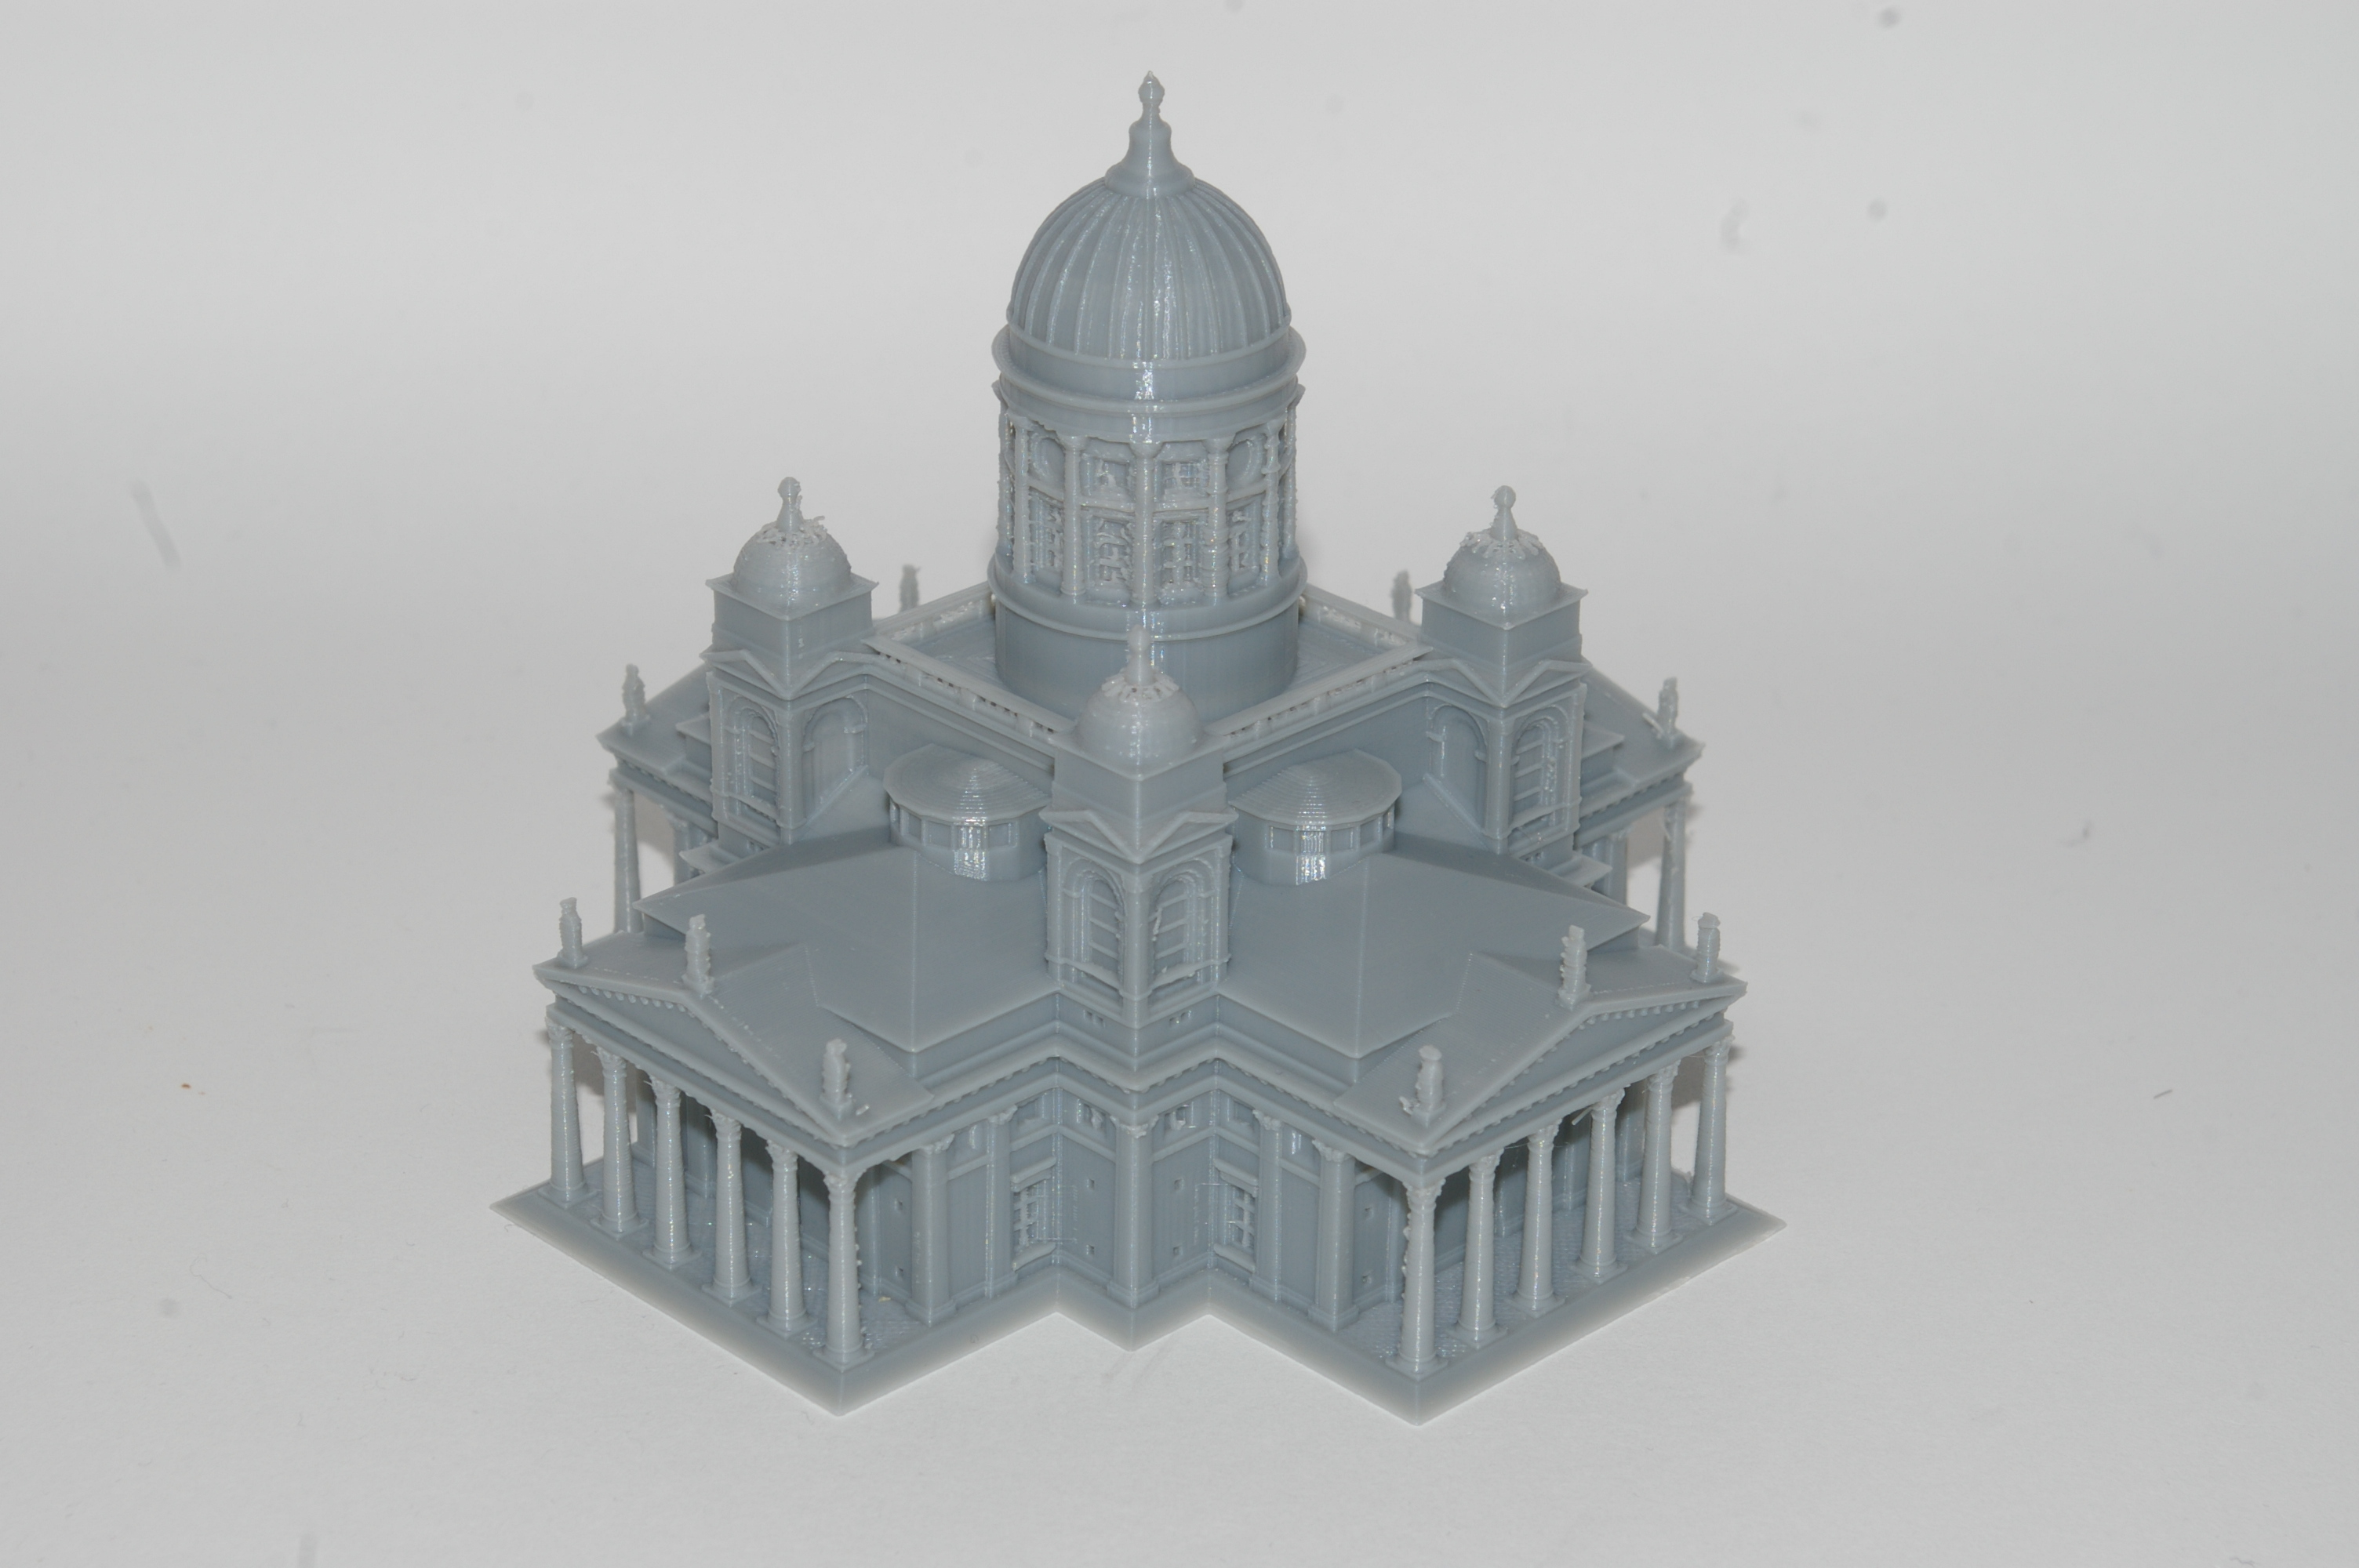 Le test de la cathédrale d'Helsinki.  Photo de l'industrie de l'impression 3D.